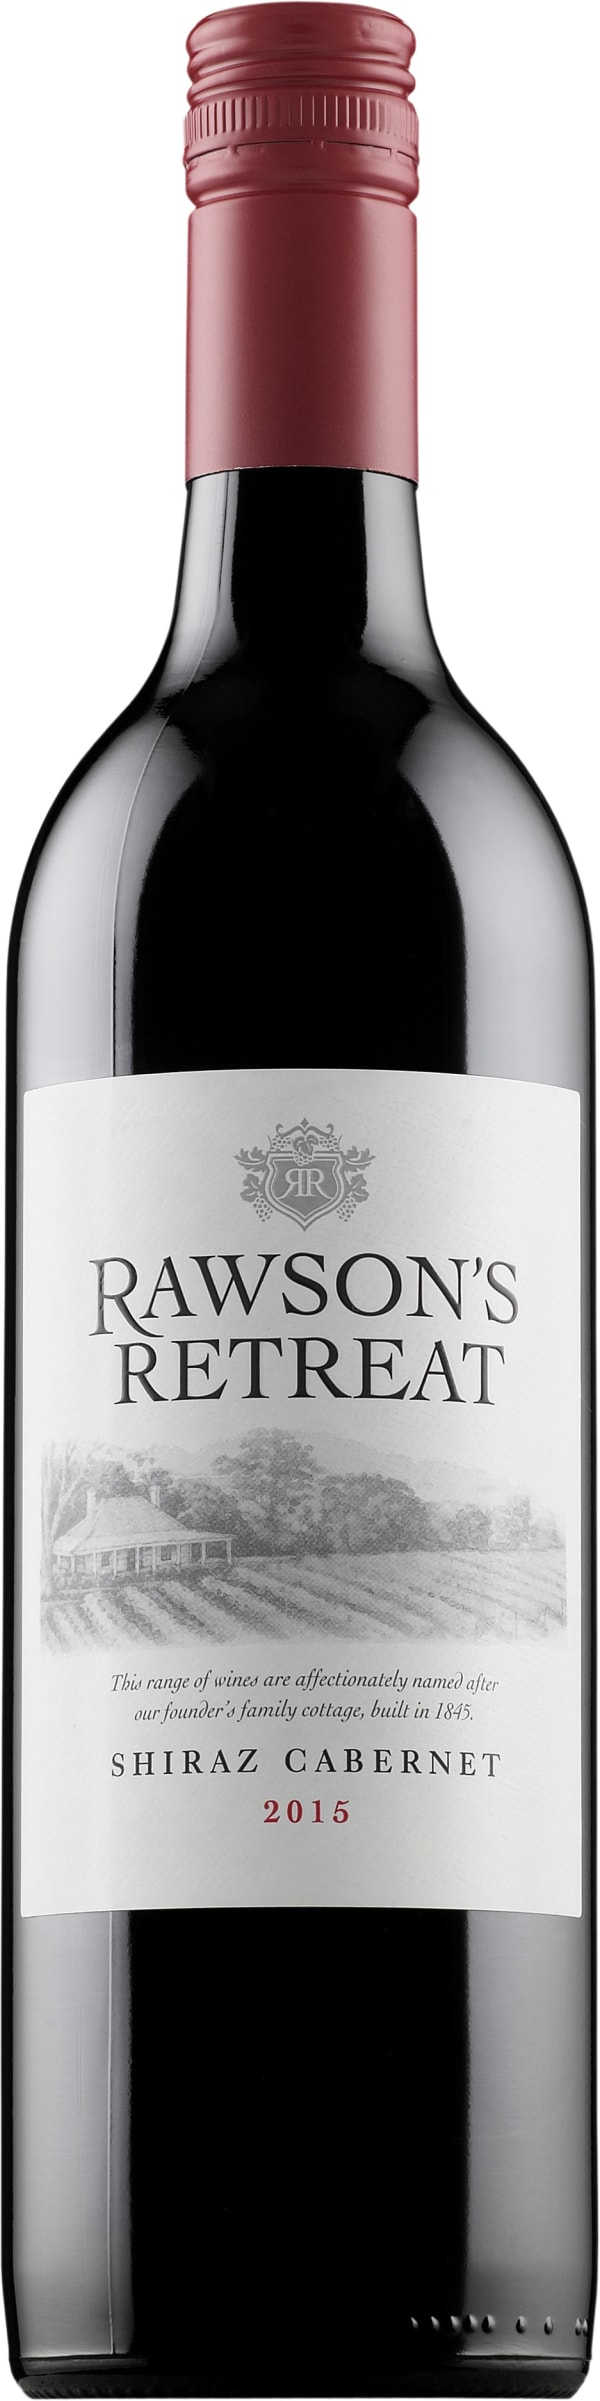 Rawson's Retreat Shiraz Cabernet 2016